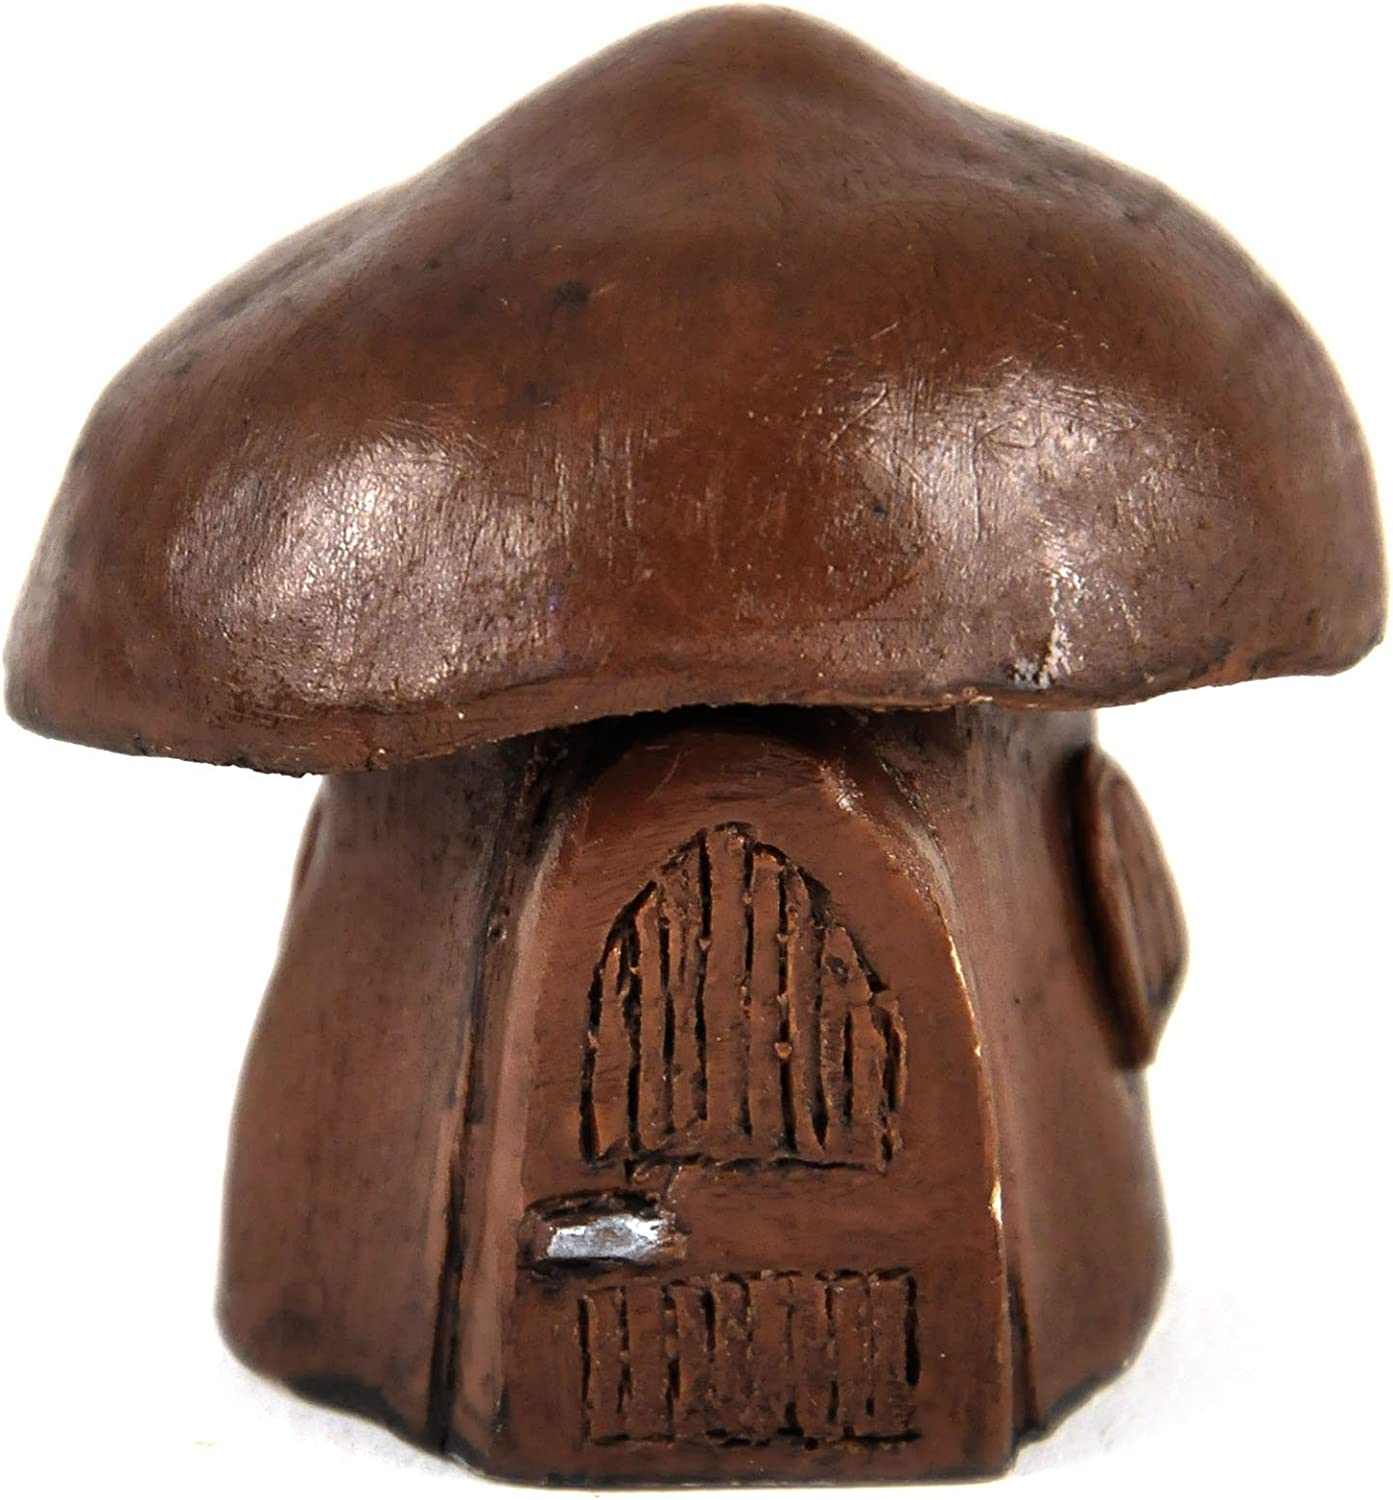 Georgetown Toadstool House - Fiddlehead Fairy Garden Collection